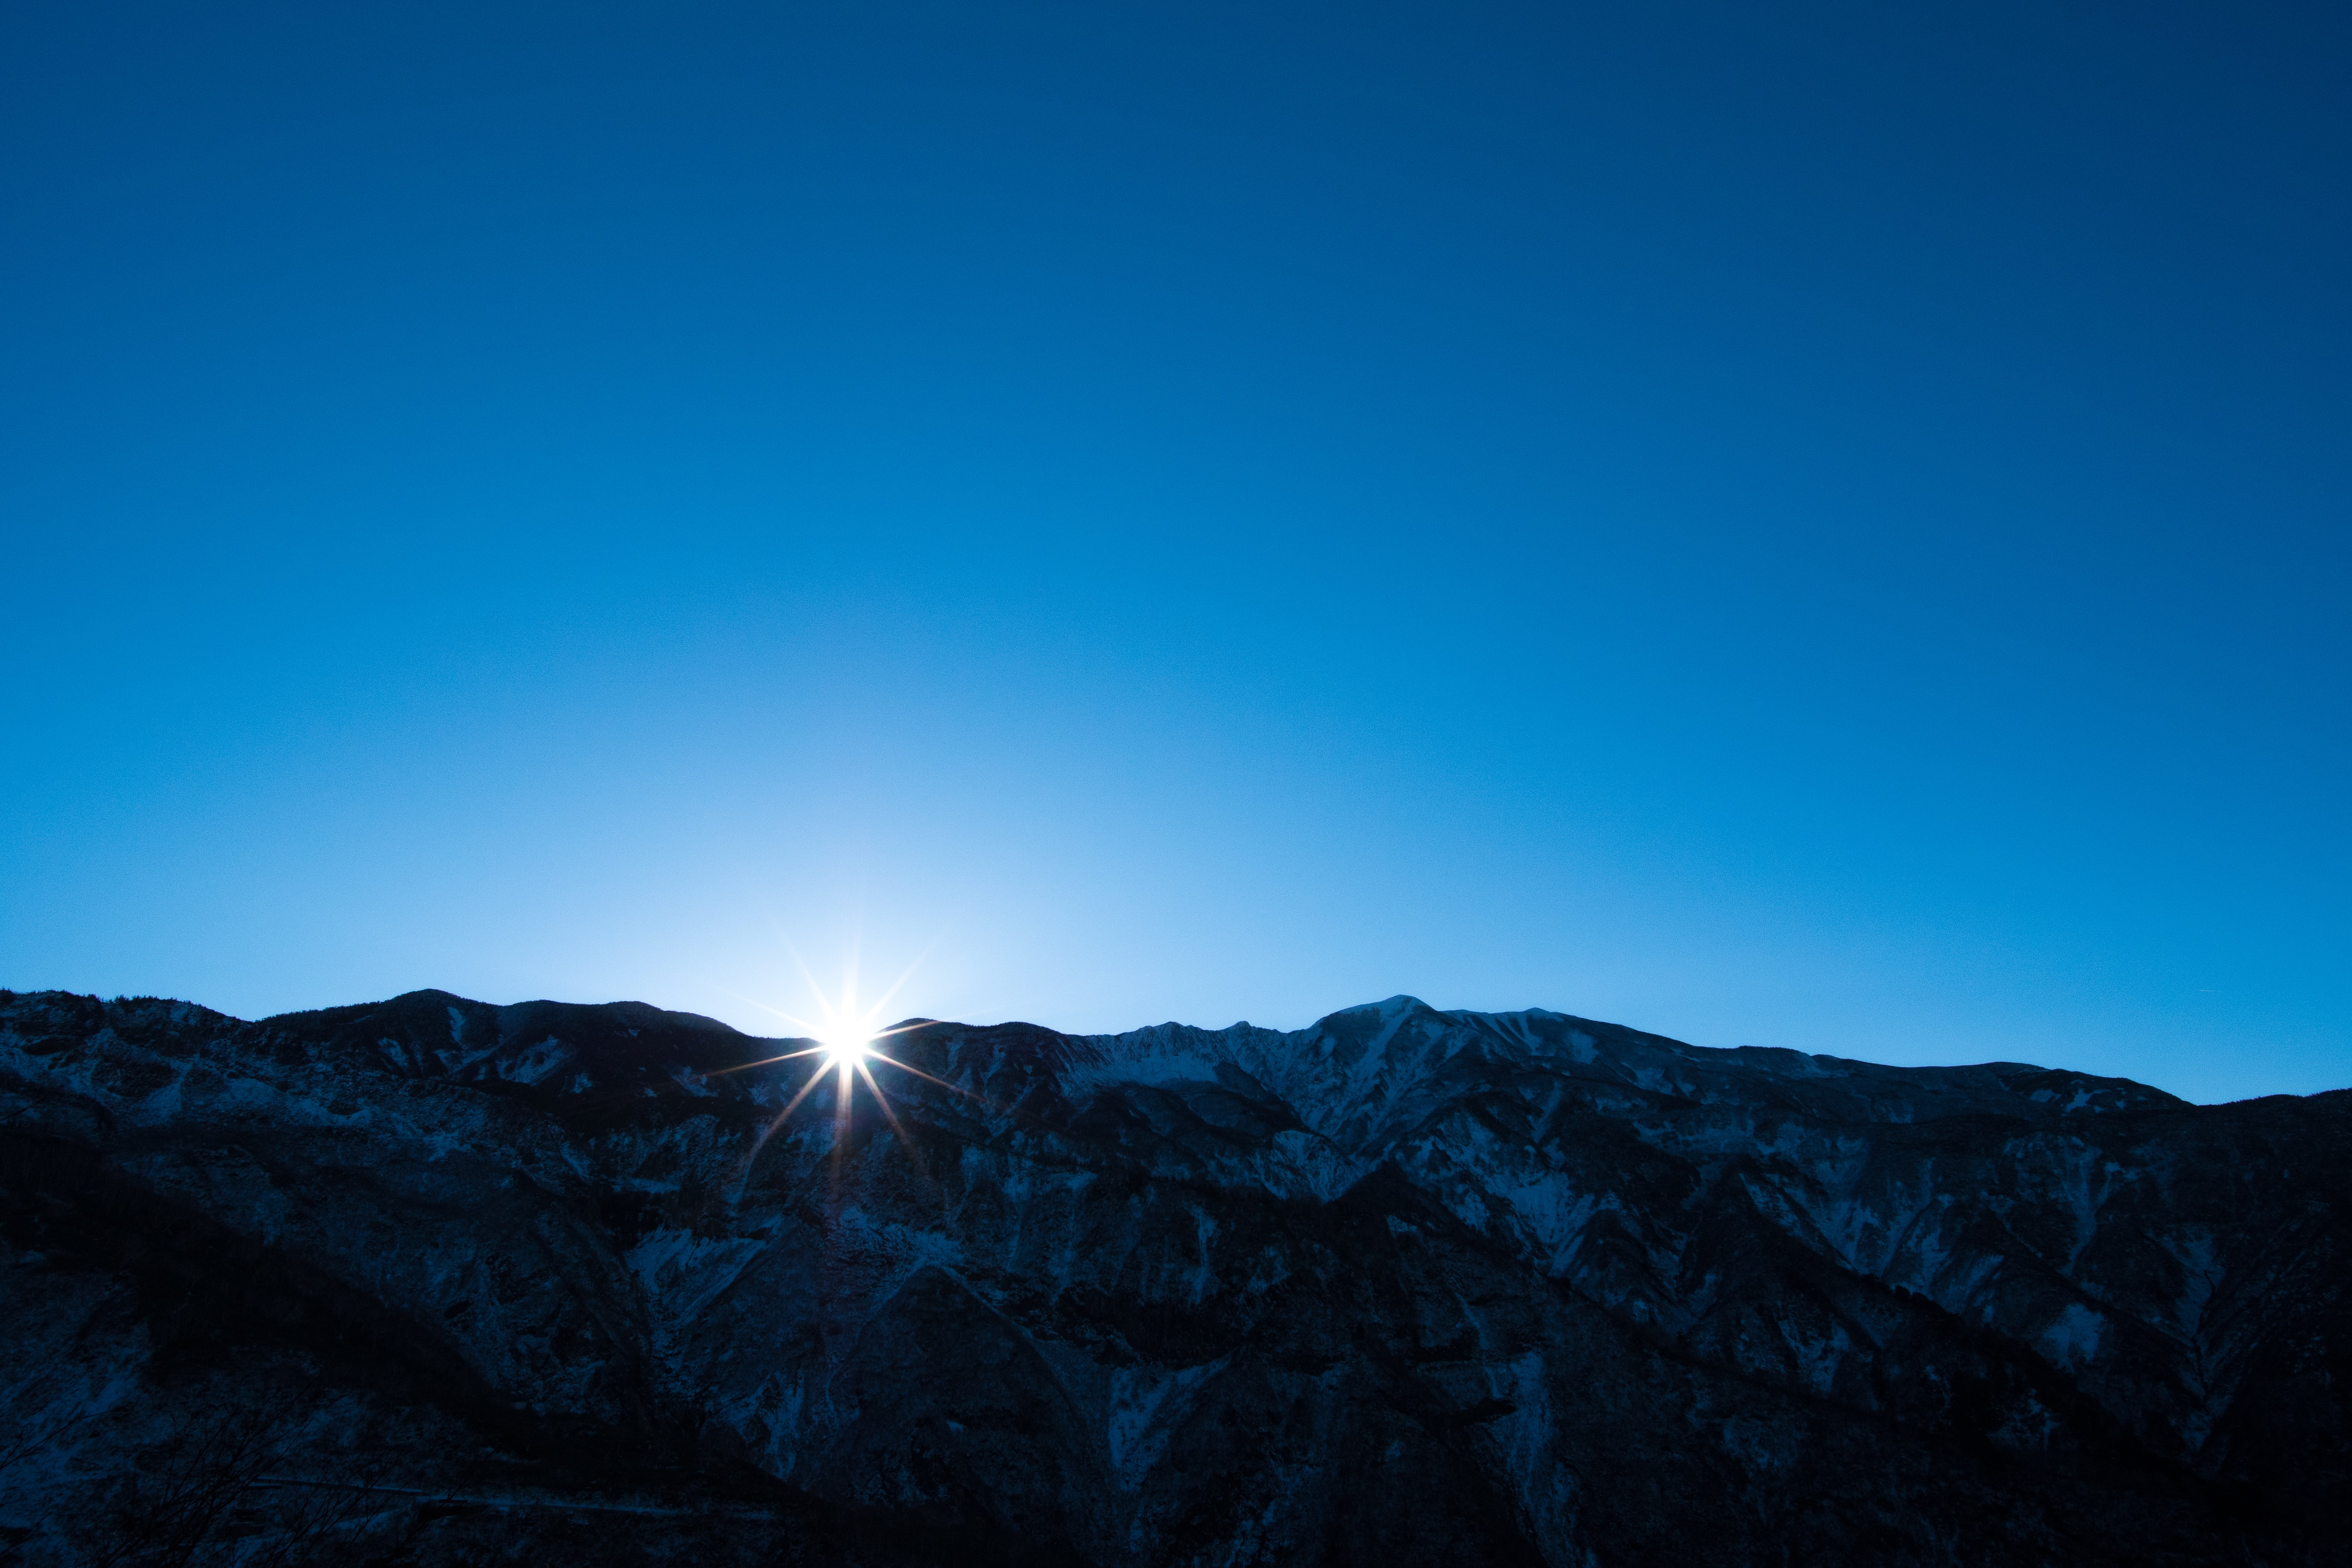 Bright sun emerging from behind a snowy mountain ridge during sunrise